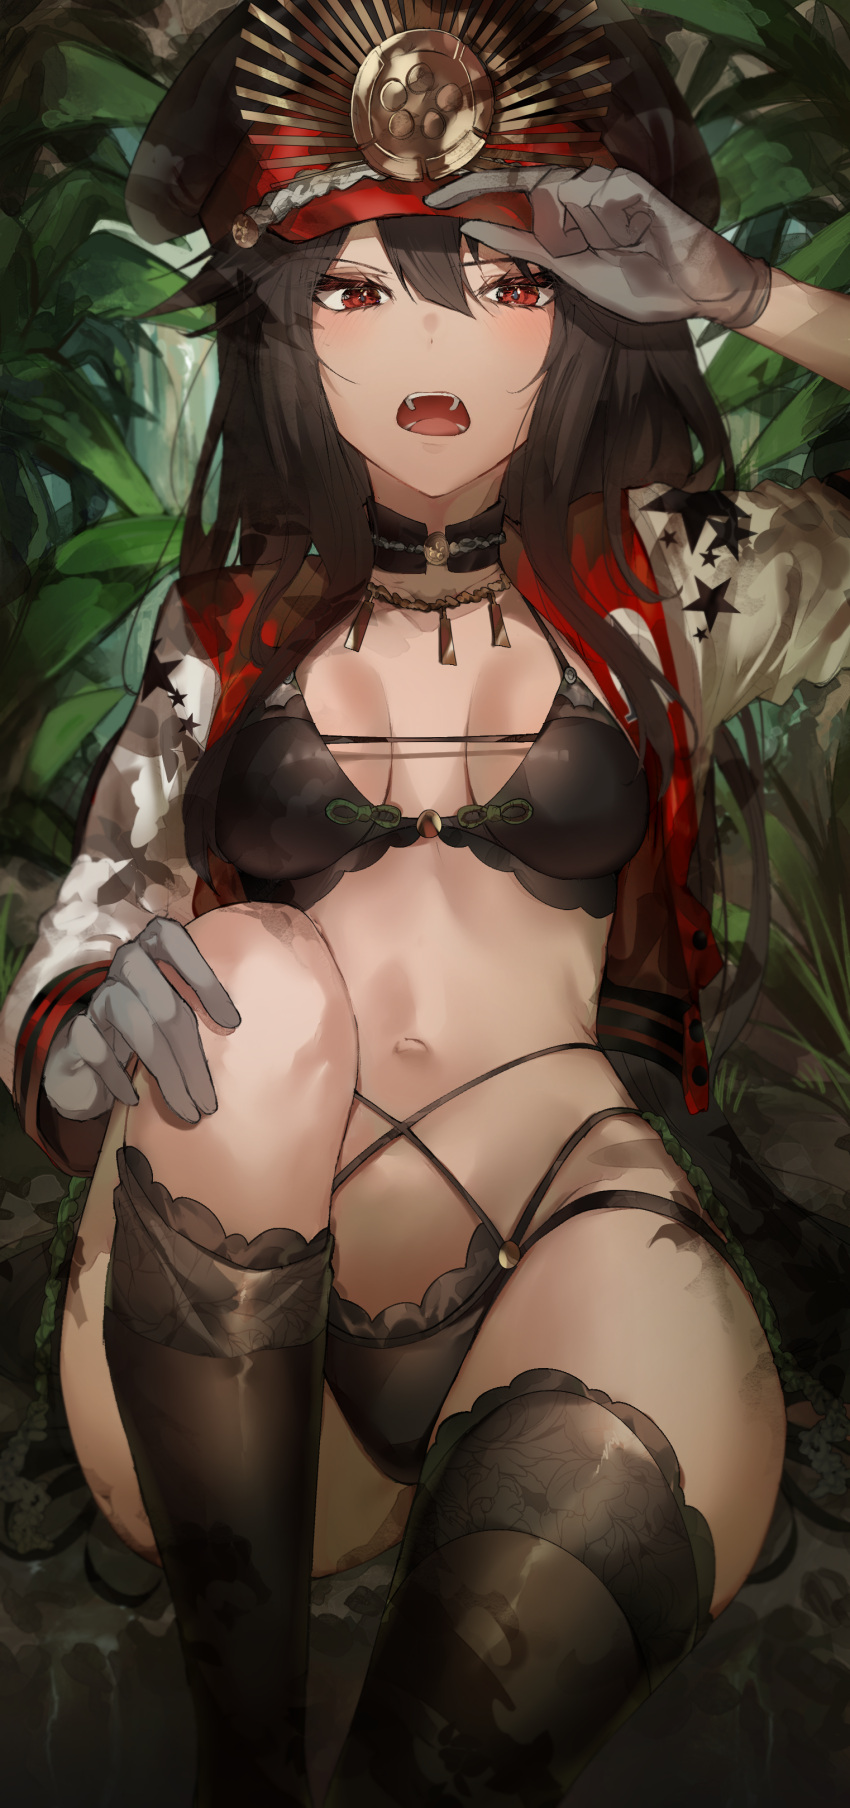 1girl absurdres arm_up bangs bikini black_bikini black_choker black_hair black_headwear black_legwear breasts breasts_apart choker cropped_jacket family_crest fangs fate/grand_order fate_(series) gloves grey_gloves hand_on_headwear hat highres jacket kanniiepan knee_up koha-ace long_hair long_sleeves looking_at_viewer medium_breasts multi-strapped_bikini navel oda_nobunaga_(fate) oda_nobunaga_(fate)_(all) oda_uri open_clothes open_jacket open_mouth peaked_cap raglan_sleeves red_eyes red_jacket revision sitting small_breasts solo stomach swimsuit thigh-highs thighs